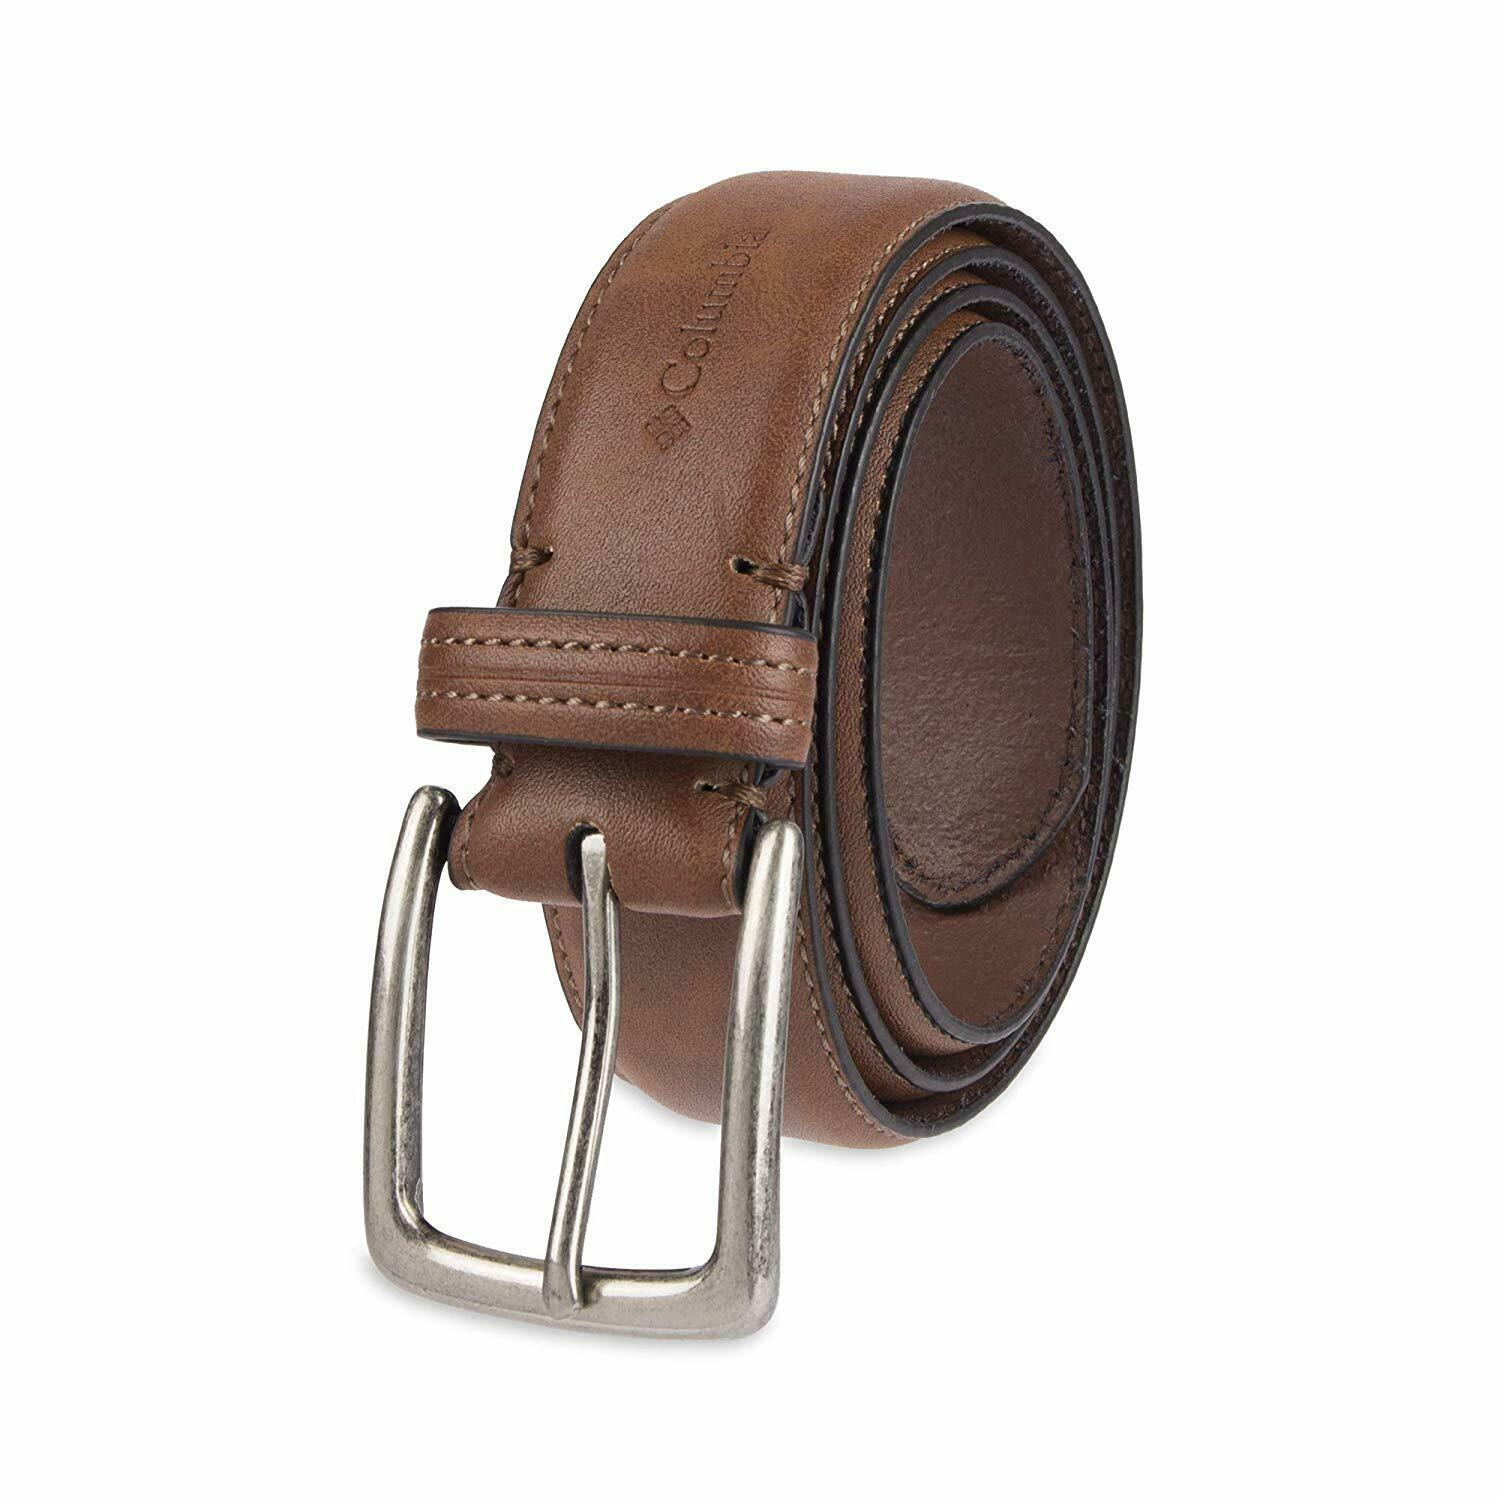 Columbia Men's Casual Leather Belt -Trinity Style for Jeans